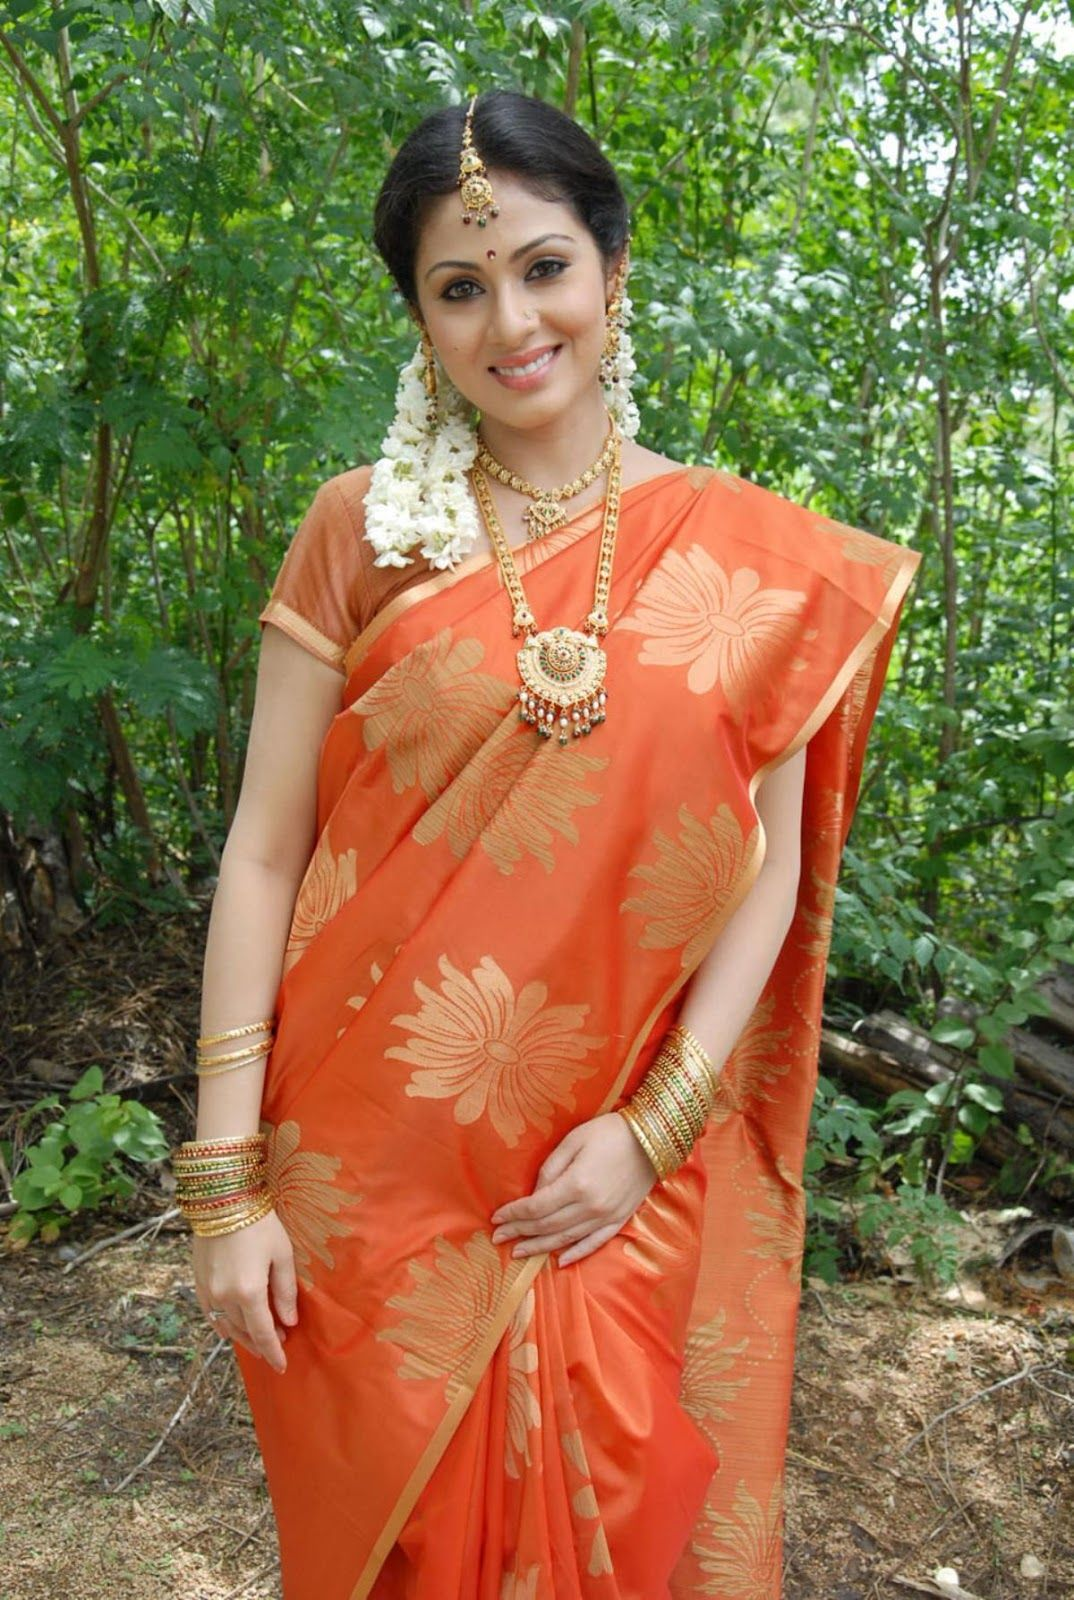 Village Tamil Girls Saree